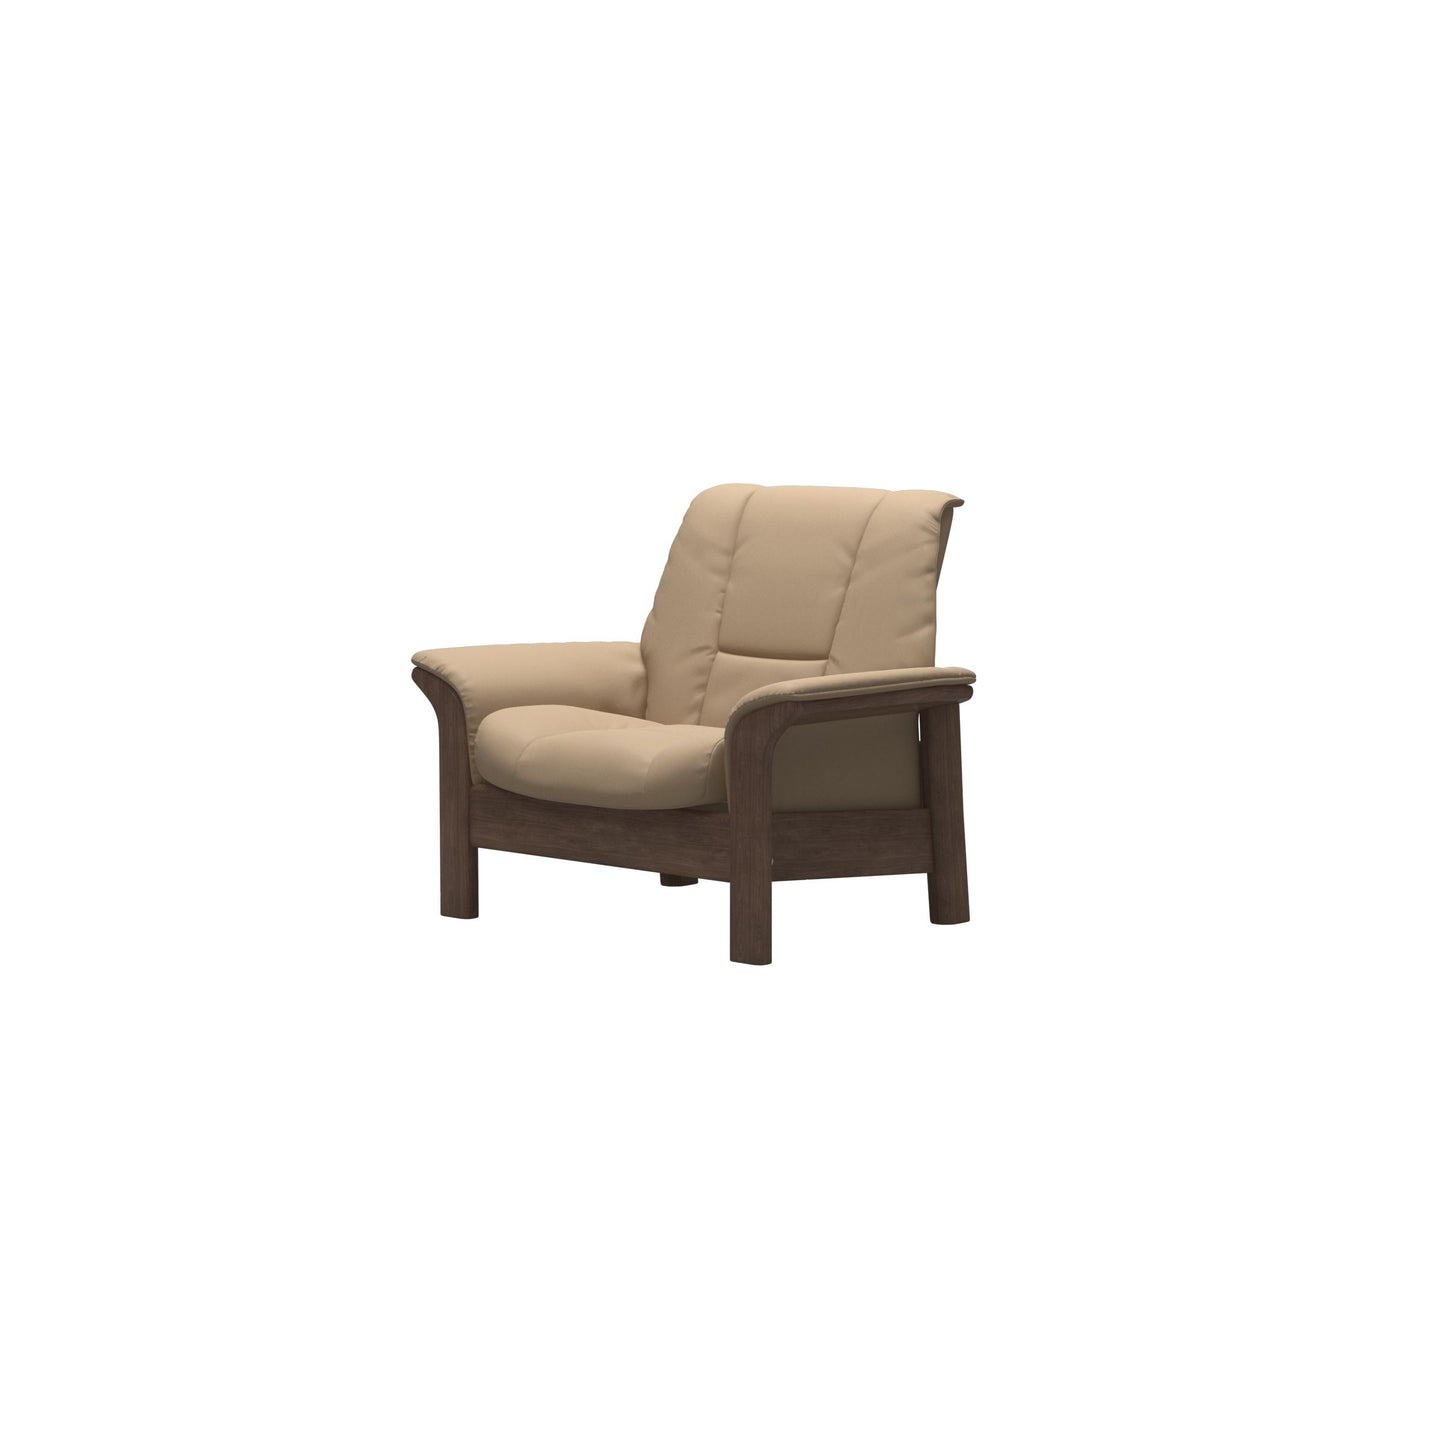 Stressless® Buckingham (L) chair Low back